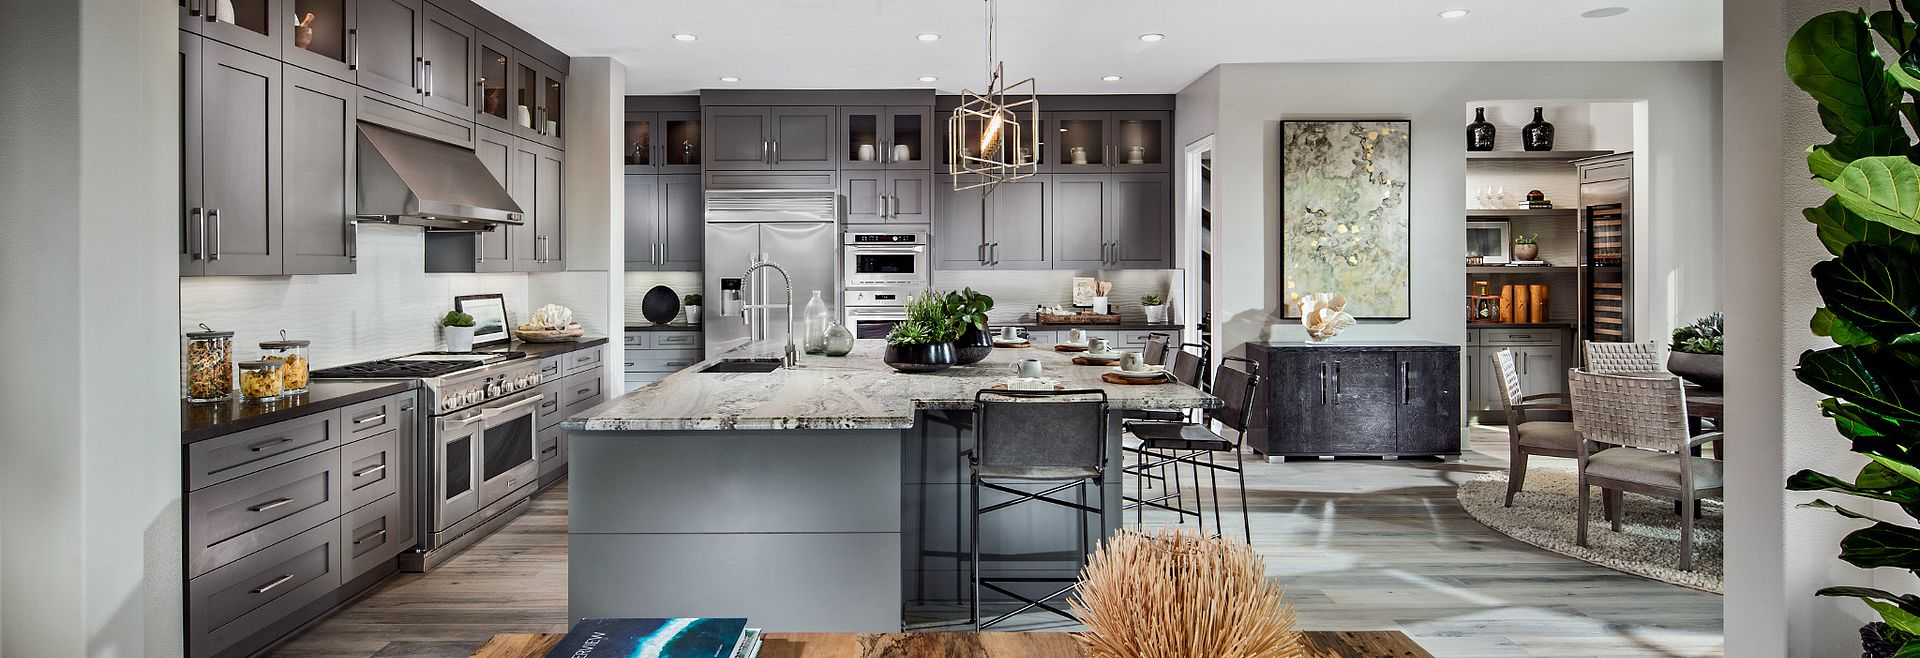 Residence 3 expansive kitchen with huge island that allows for bar stool seating, extended height grey cabinets, stainless steel appliances, recessed lighting, and pendant lighting